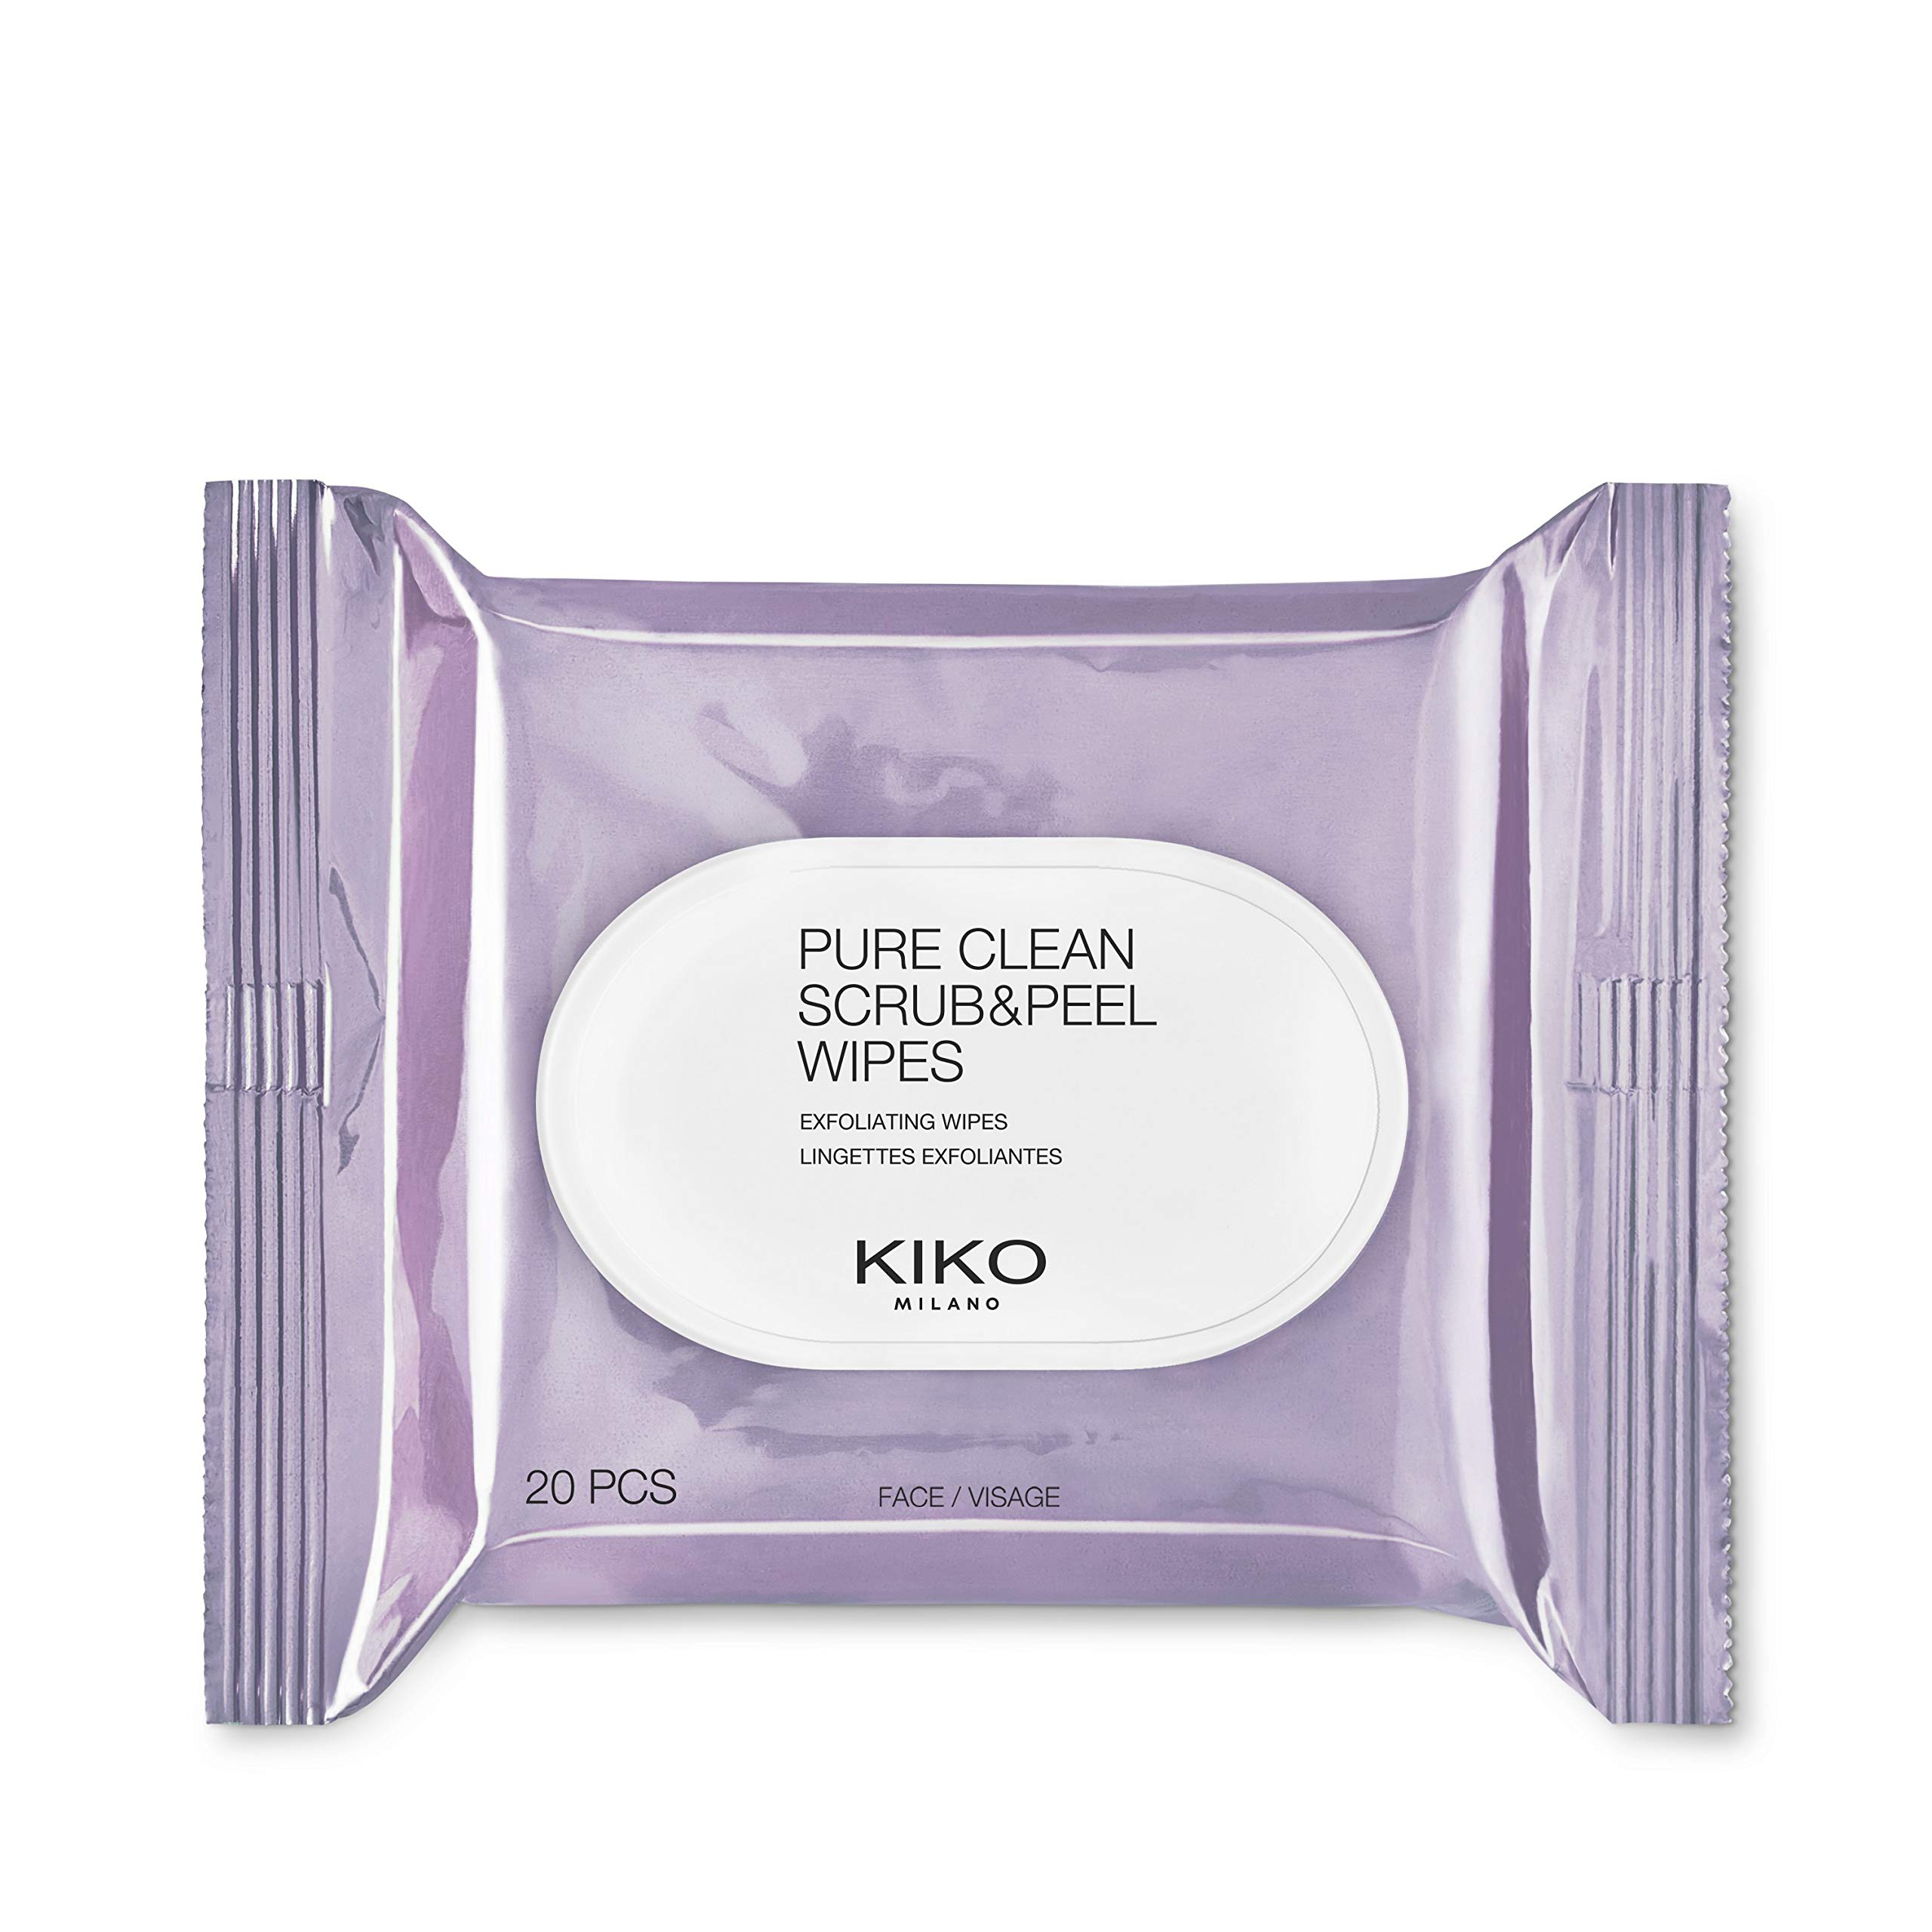 KIKO MILANO - Makeup Remover Pure Clean Scrub & Peel 2-sided Makeup Wipes | 20x Wet Face Wipes that both Exfoliate and Refresh the Face, 2-in-1 | Cruelty Free & Hypoallergenic | Made in Italy